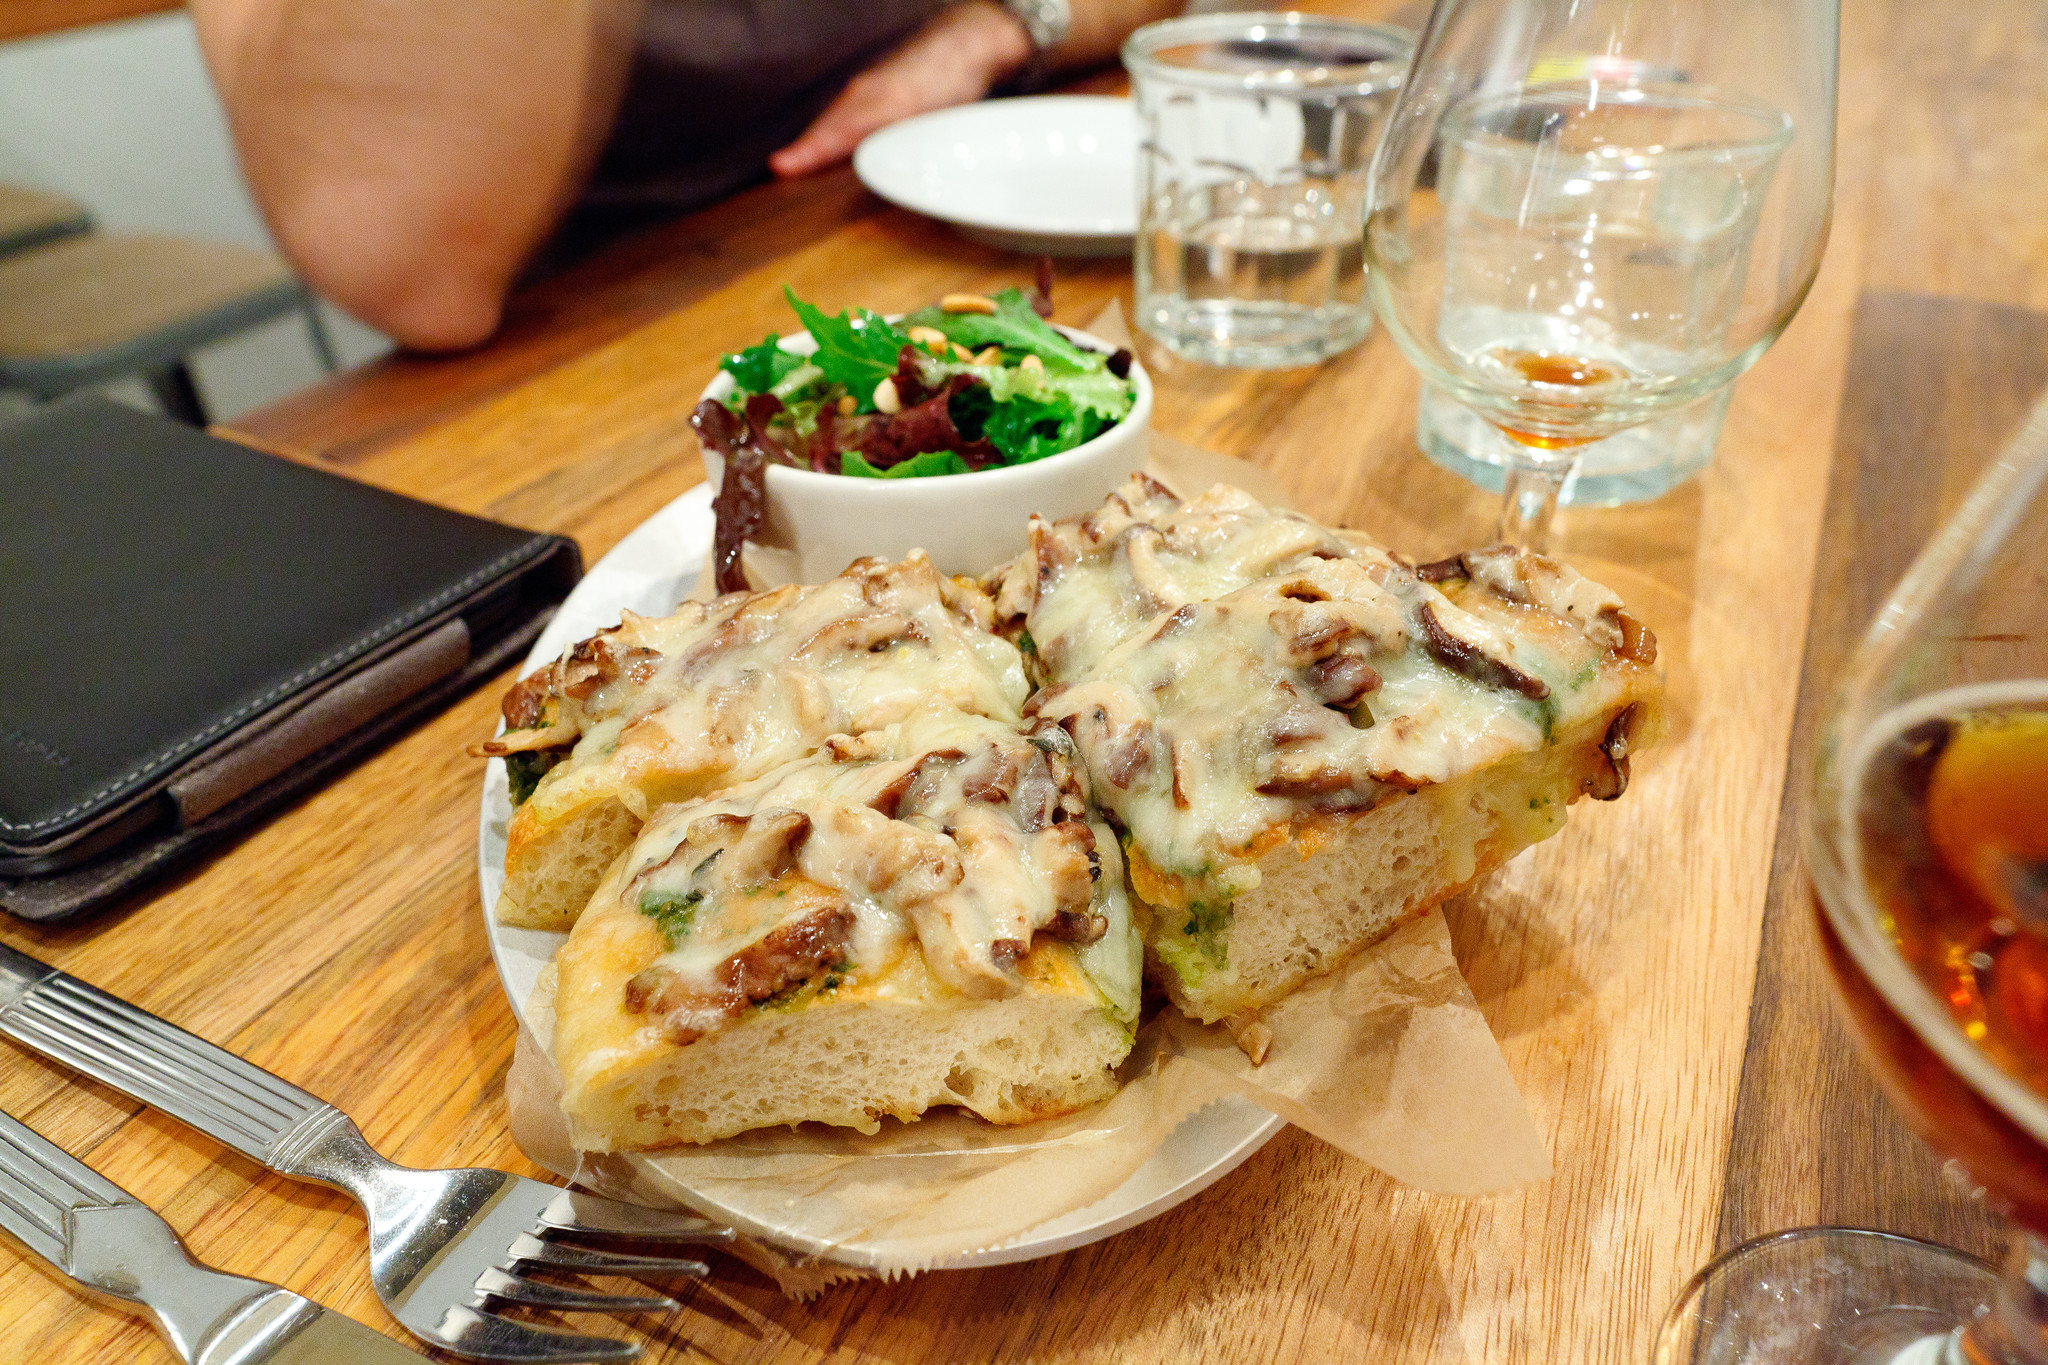 Fontina Val d'Aosta - Marinated mushrooms and basil pesto open-face on focaccia with green salad and toasted pine nuts